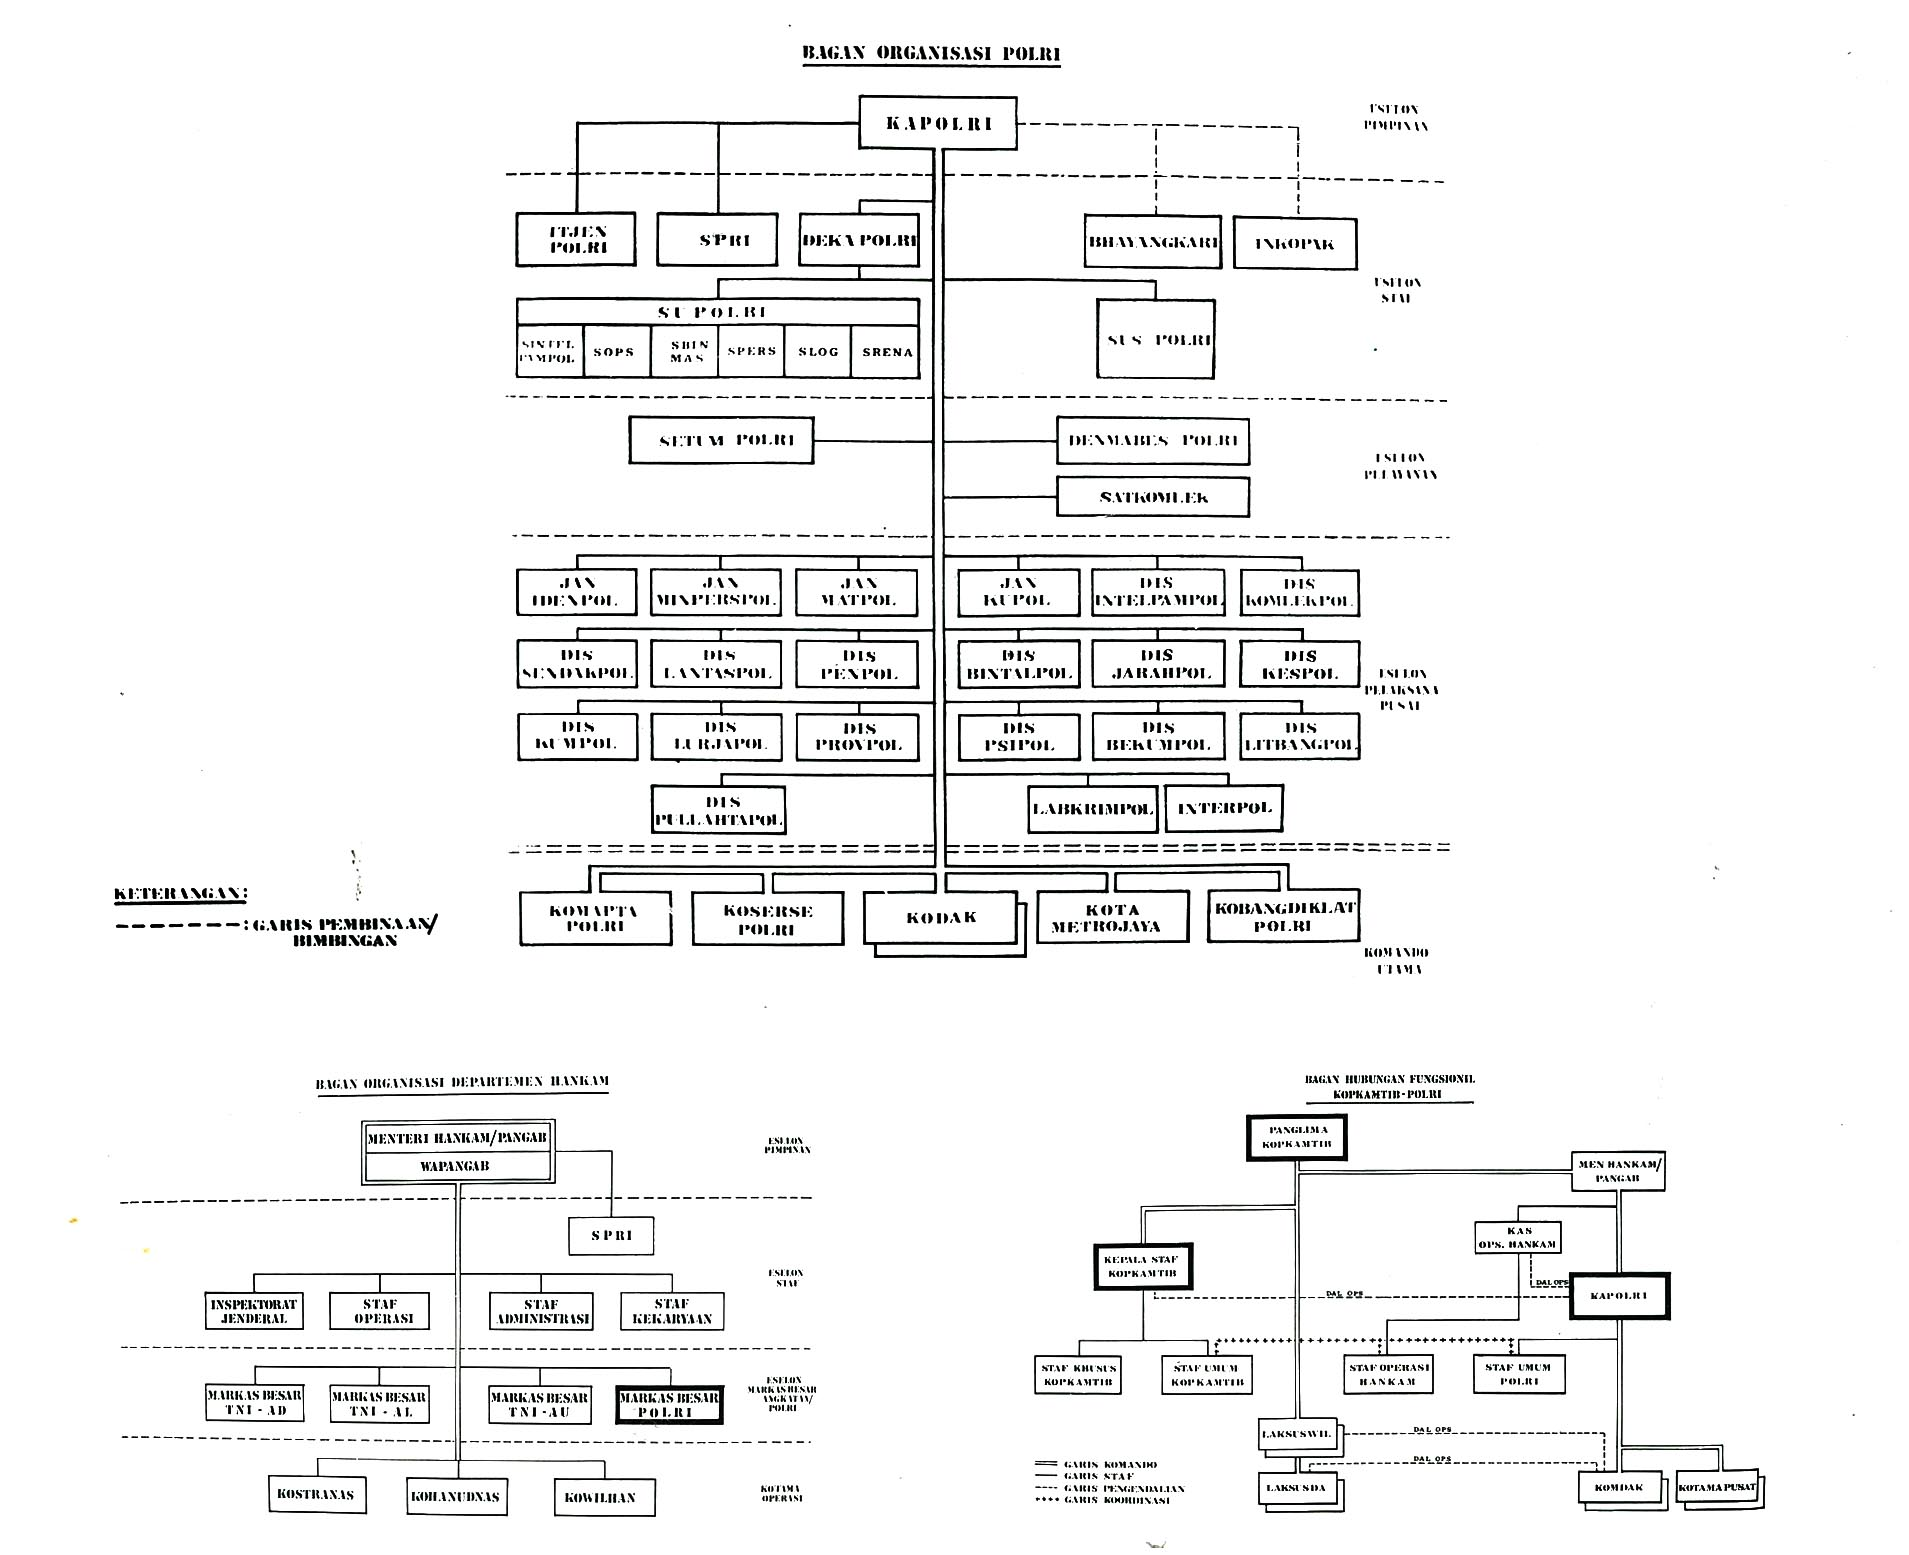 Police Department Organizational Chart: Structure of Indonesian police Sekilas Lintas Kepolisian ,Chart